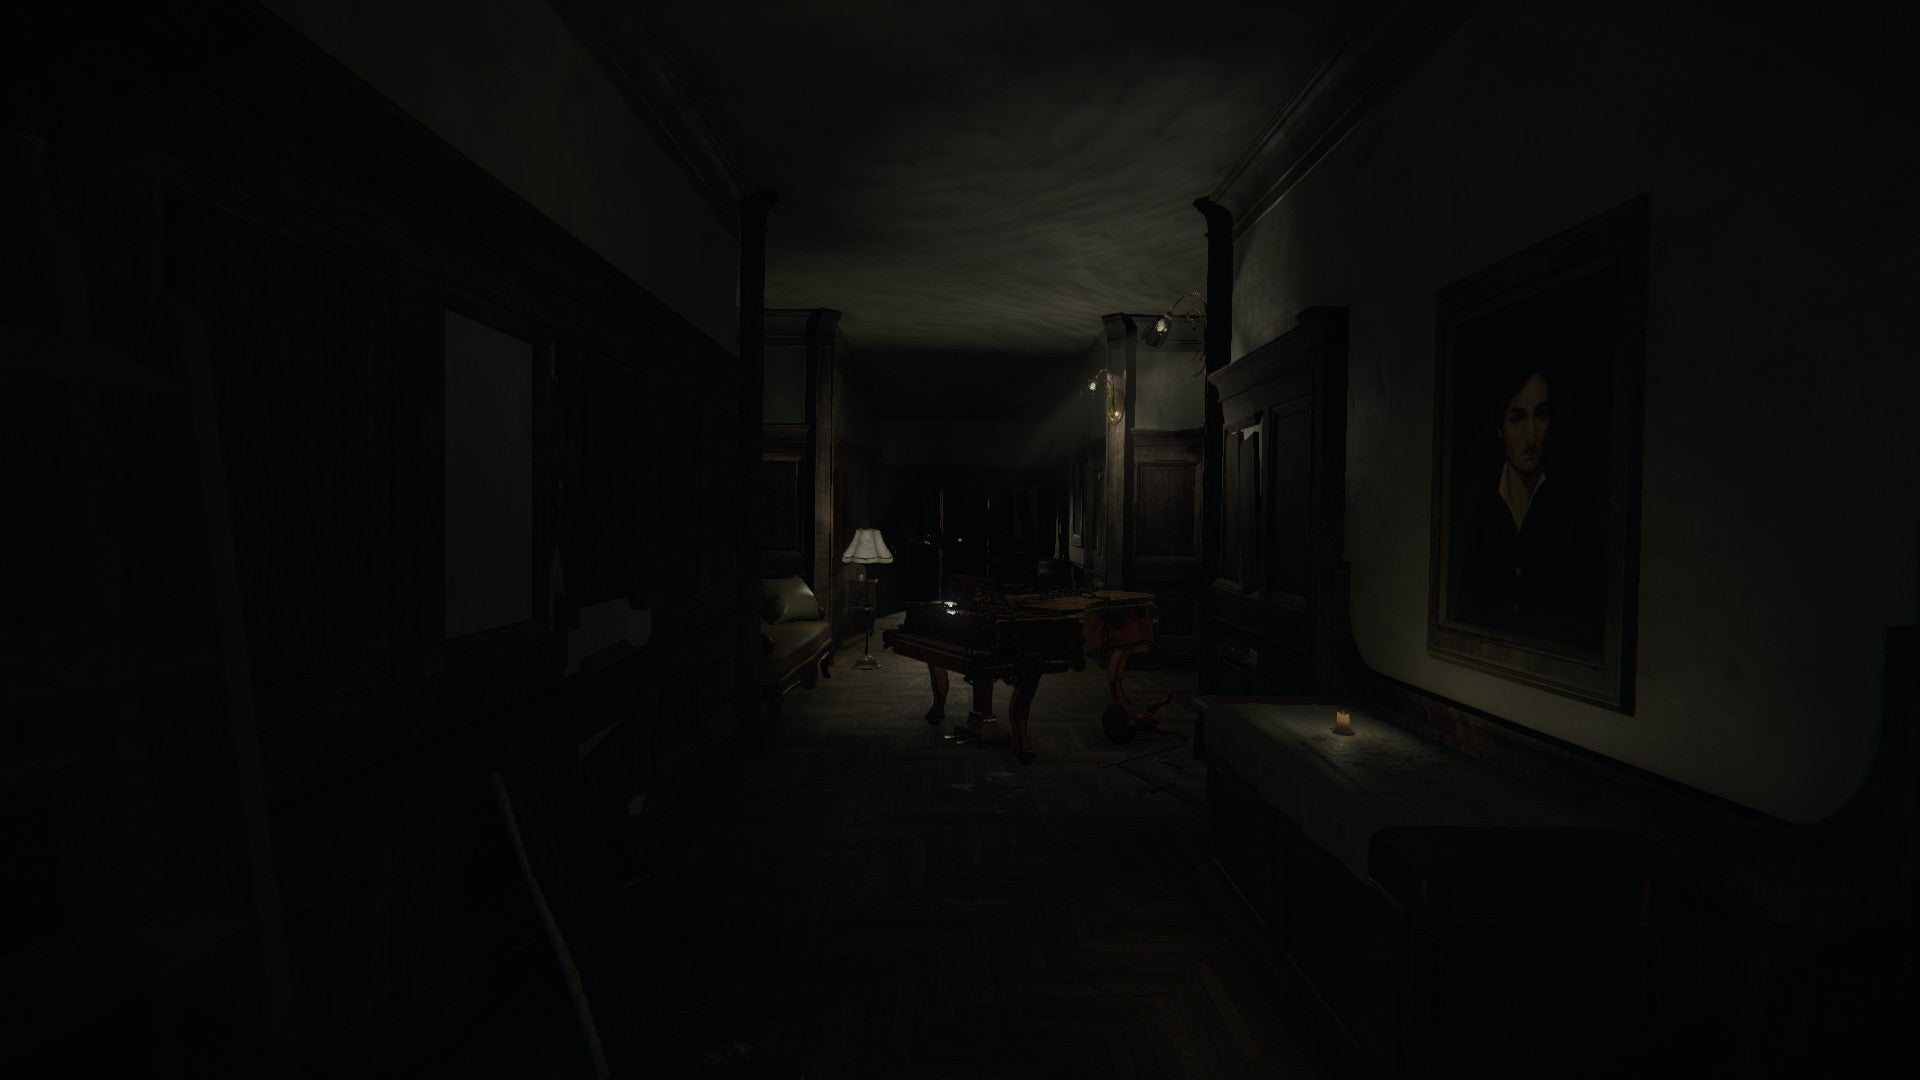 Layers of Fear & Layers of Fear review: An unsettling subversion of expectations ... azcodes.com